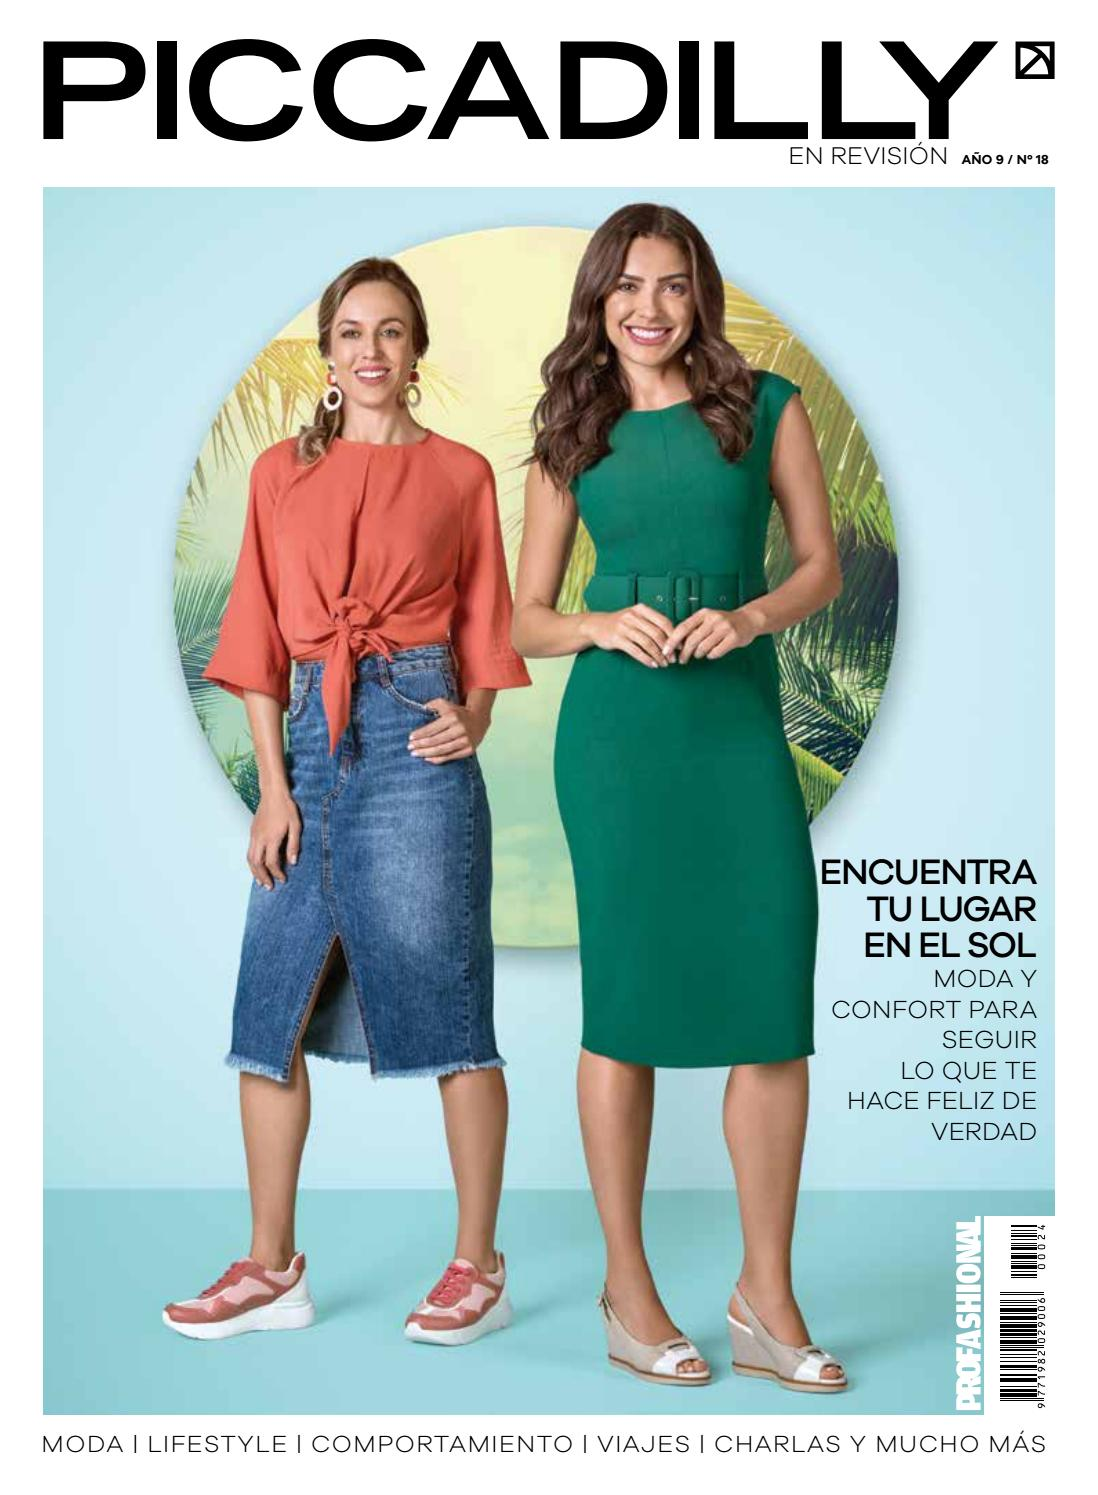 Piccadilly Revista Pv2020 By Piccadillymx Issuu